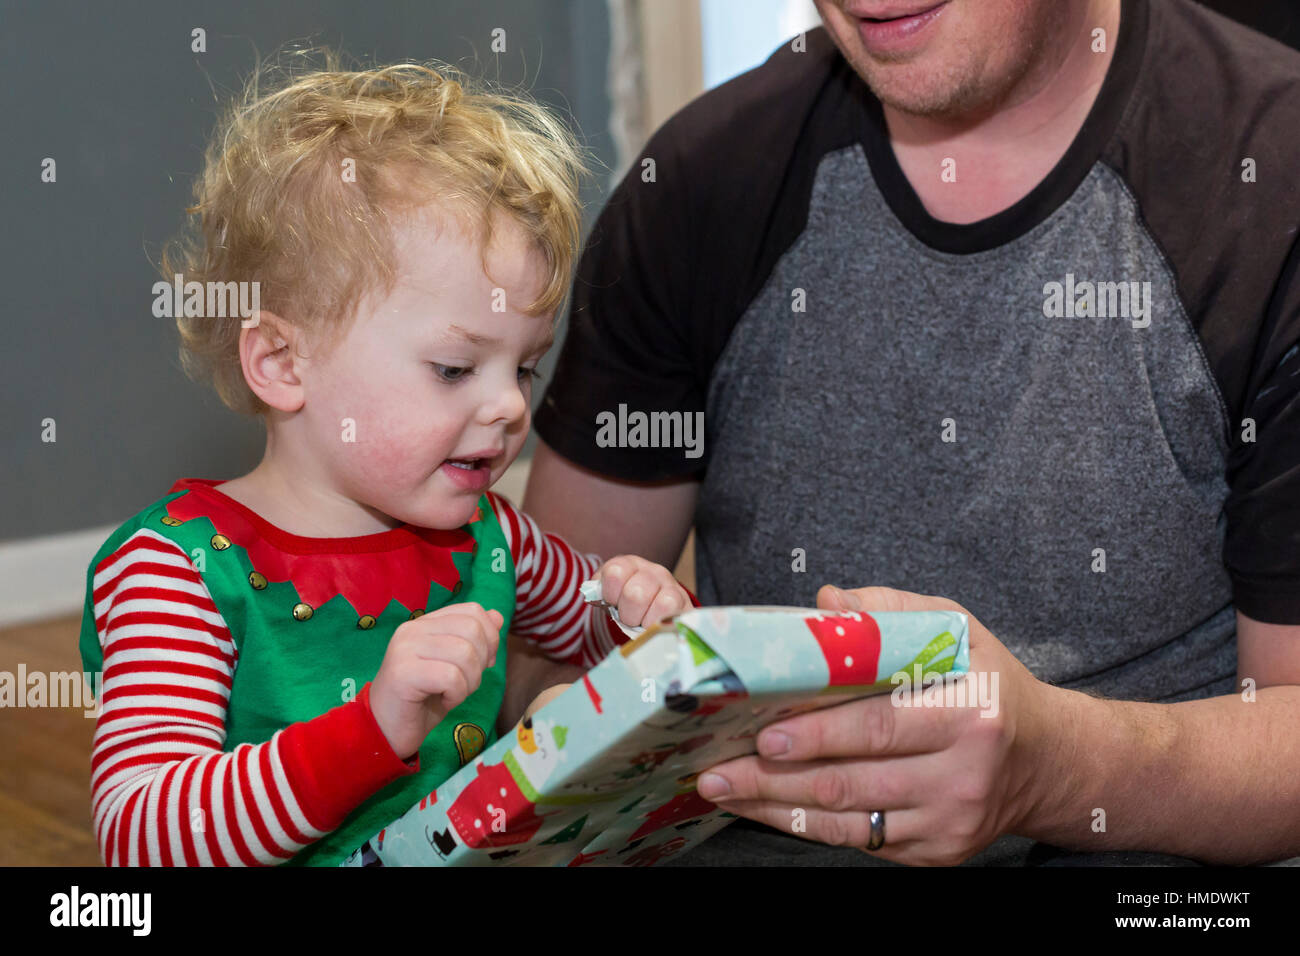 Denver, Colorado - Adam Hjermstad Jr., 2 1/2, opens a Christmas present held by his dad, Adam Hjermstad Sr. - Stock Image